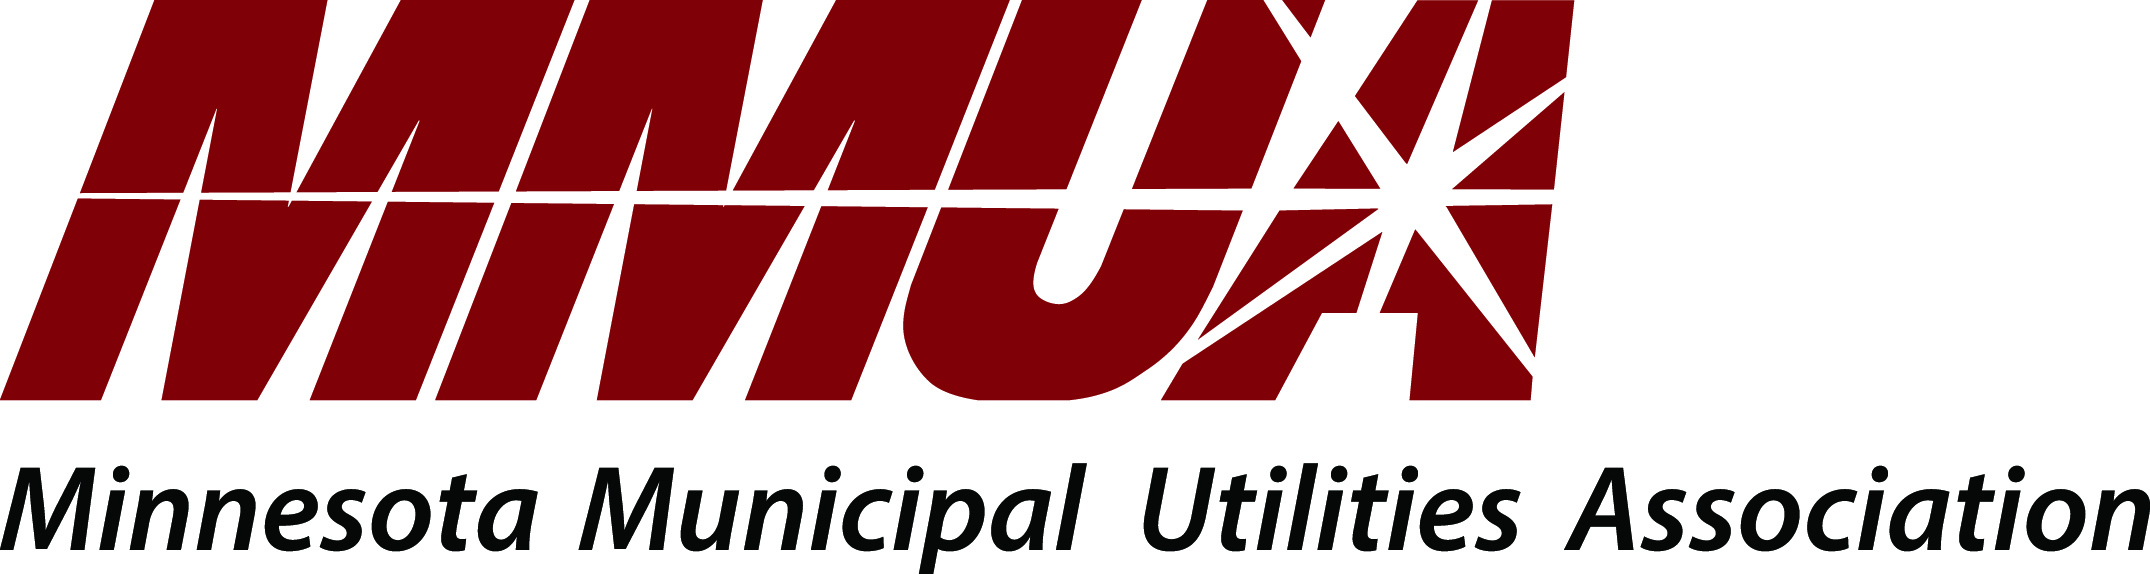 https://www.publicpower.org/sites/default/files/inline-images/MMUA_PrimaryLogo.jpg